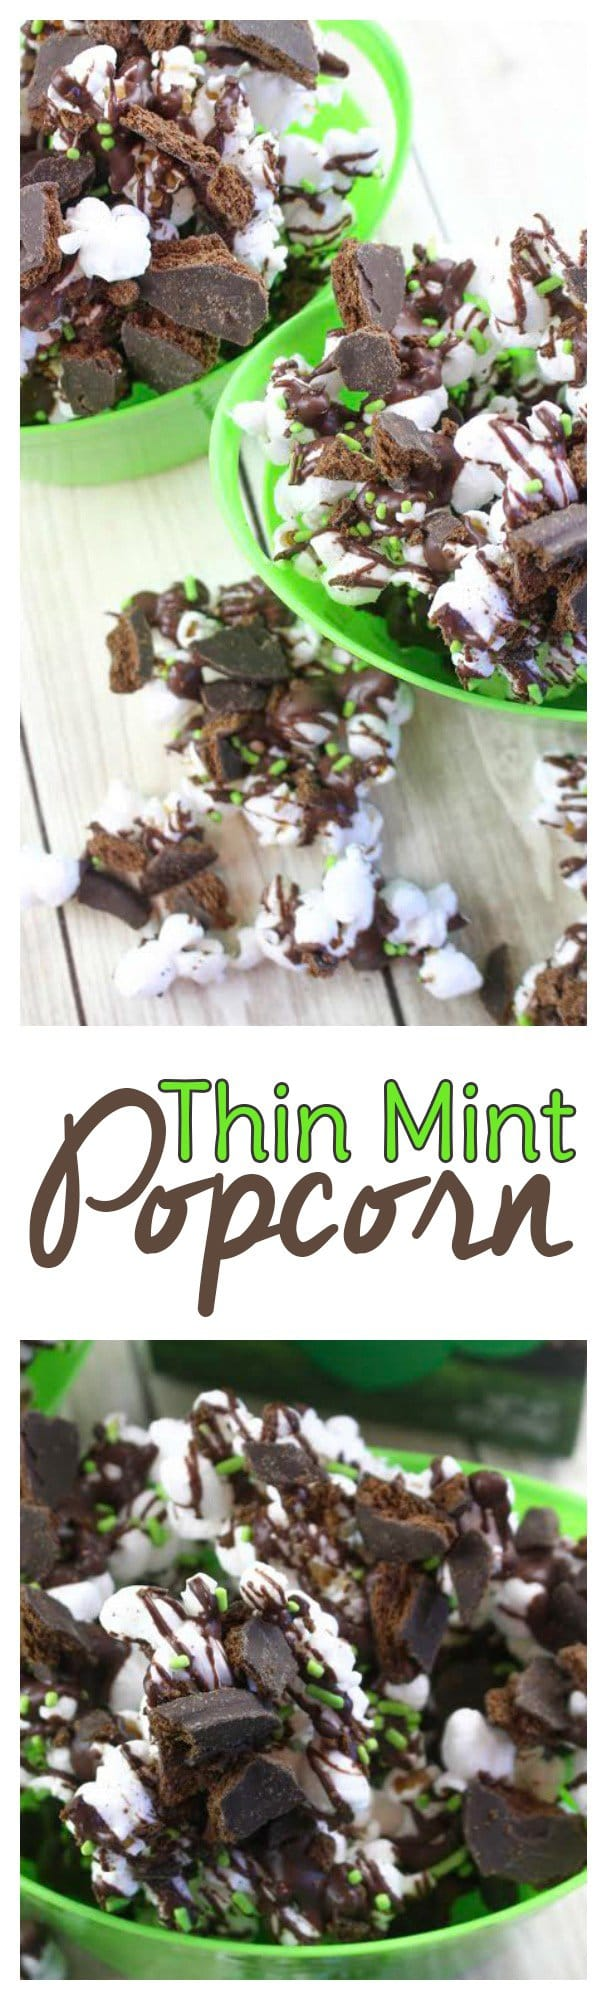 Need a leftover Girl Scout cookie recipe? Try this Mint Chocolate Popcorn Recipe! It's is a creative way to use up those leftover Girl Scout cookies.